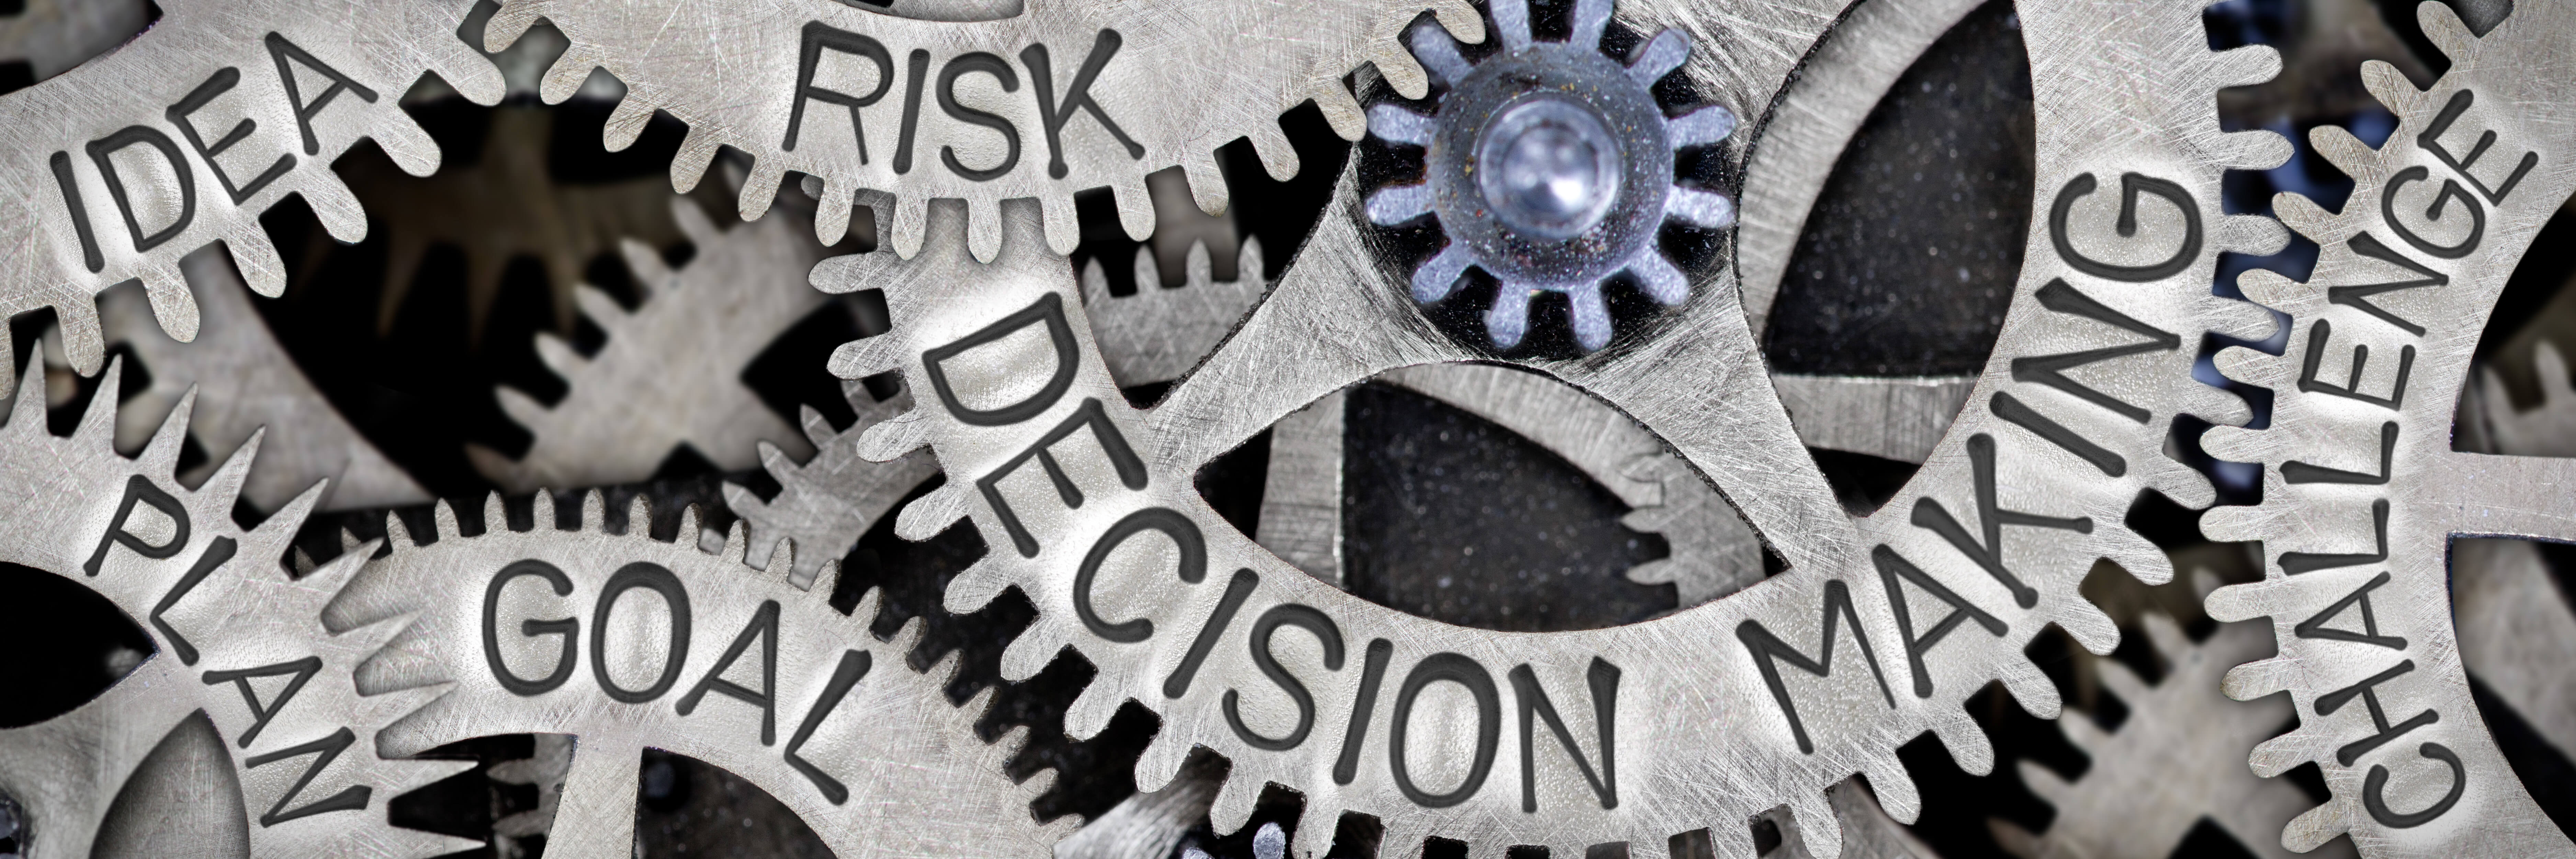 decision making cogs